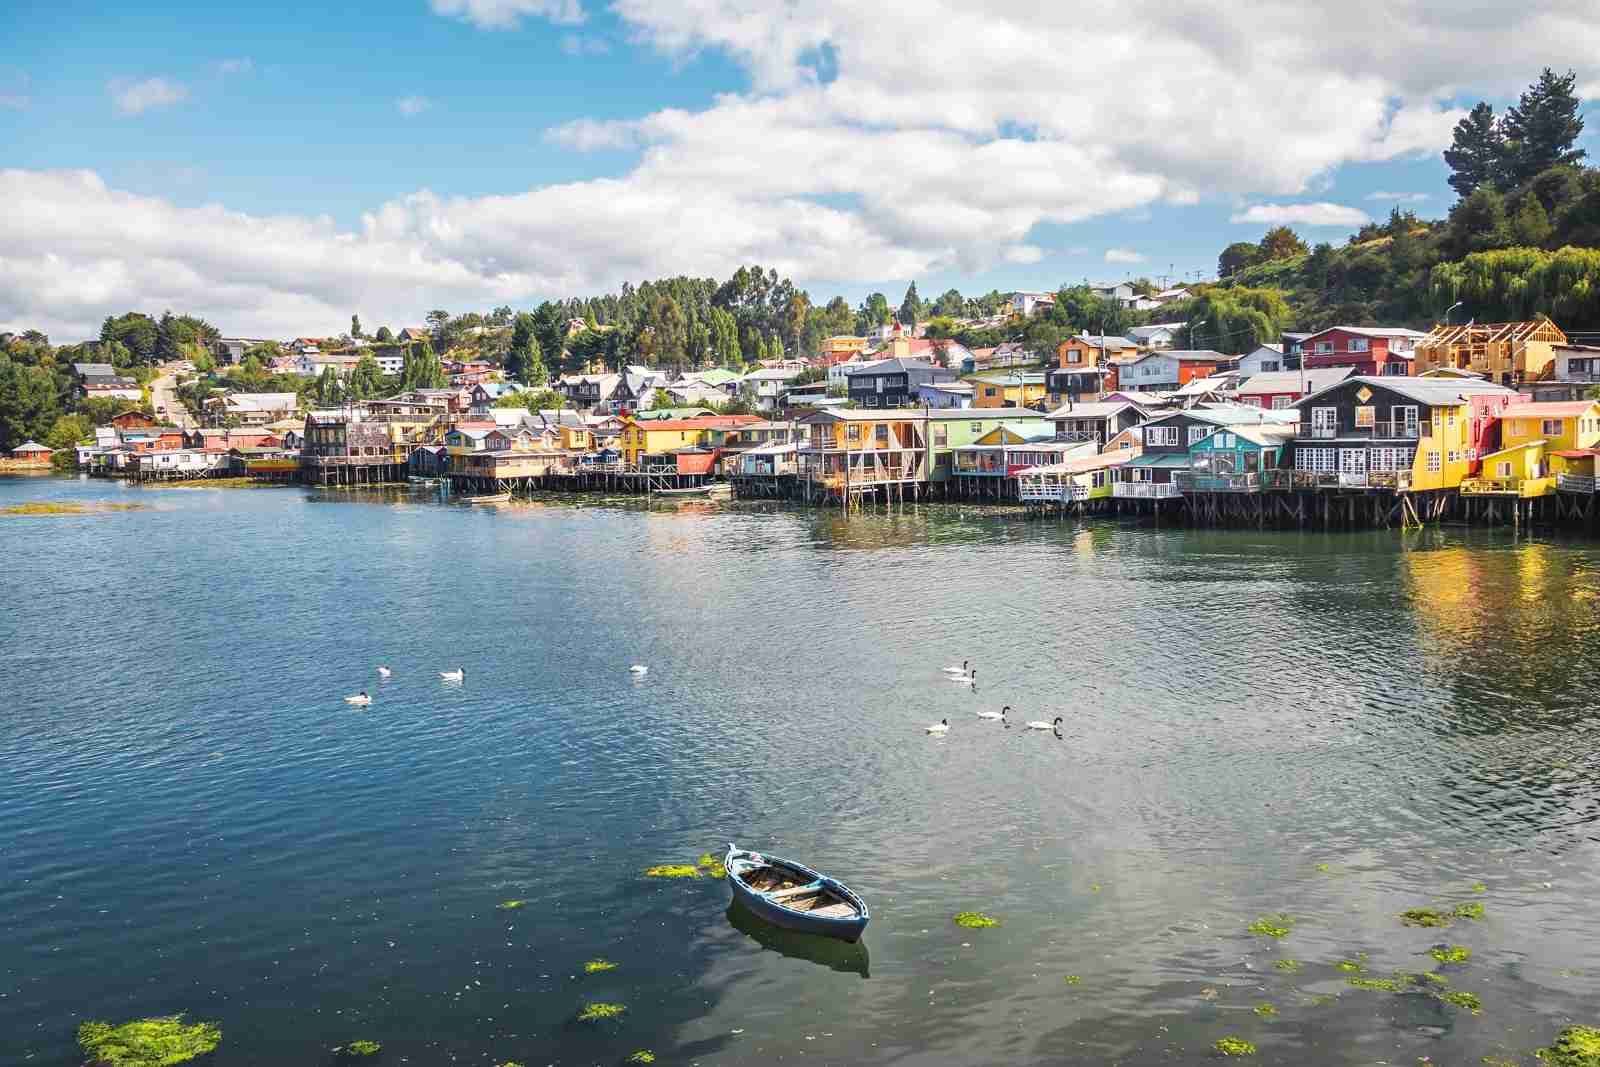 Castro, Chiloe Island, Chile. (Photo by Diego Grandi / Getty)